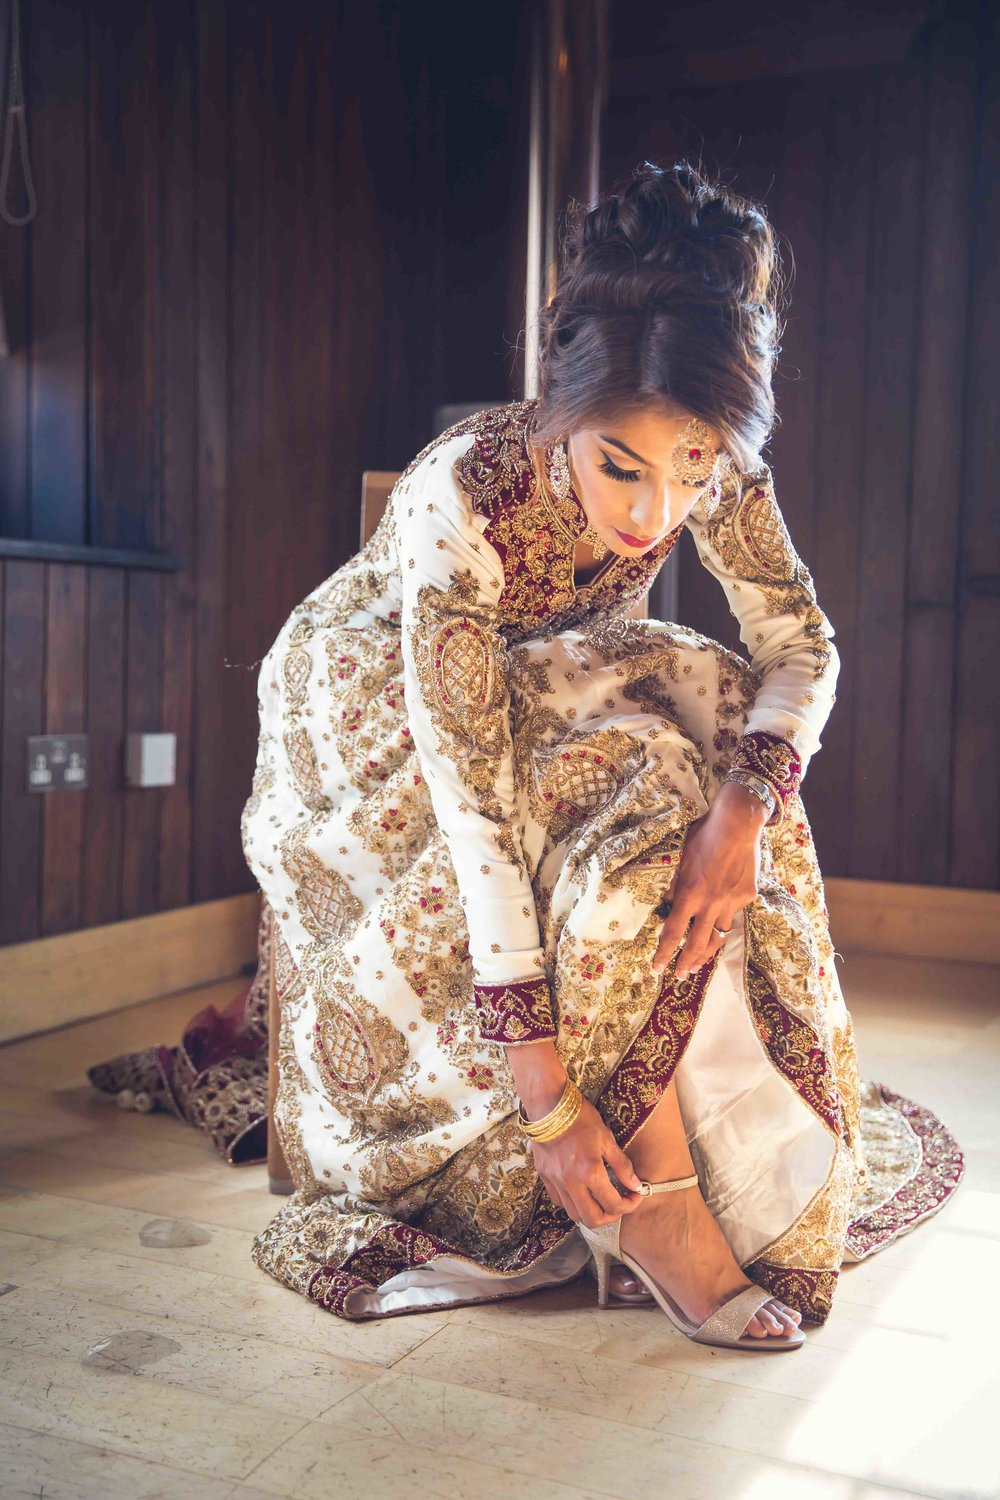 Asian Wedding Photographer Opu Sultan Photography Lyme Park Scotland Edinburgh Glasgow London Manchester Liverpool Birmingham Wedding Photos prewed shoot Azman & Saira Blog-50.jpg